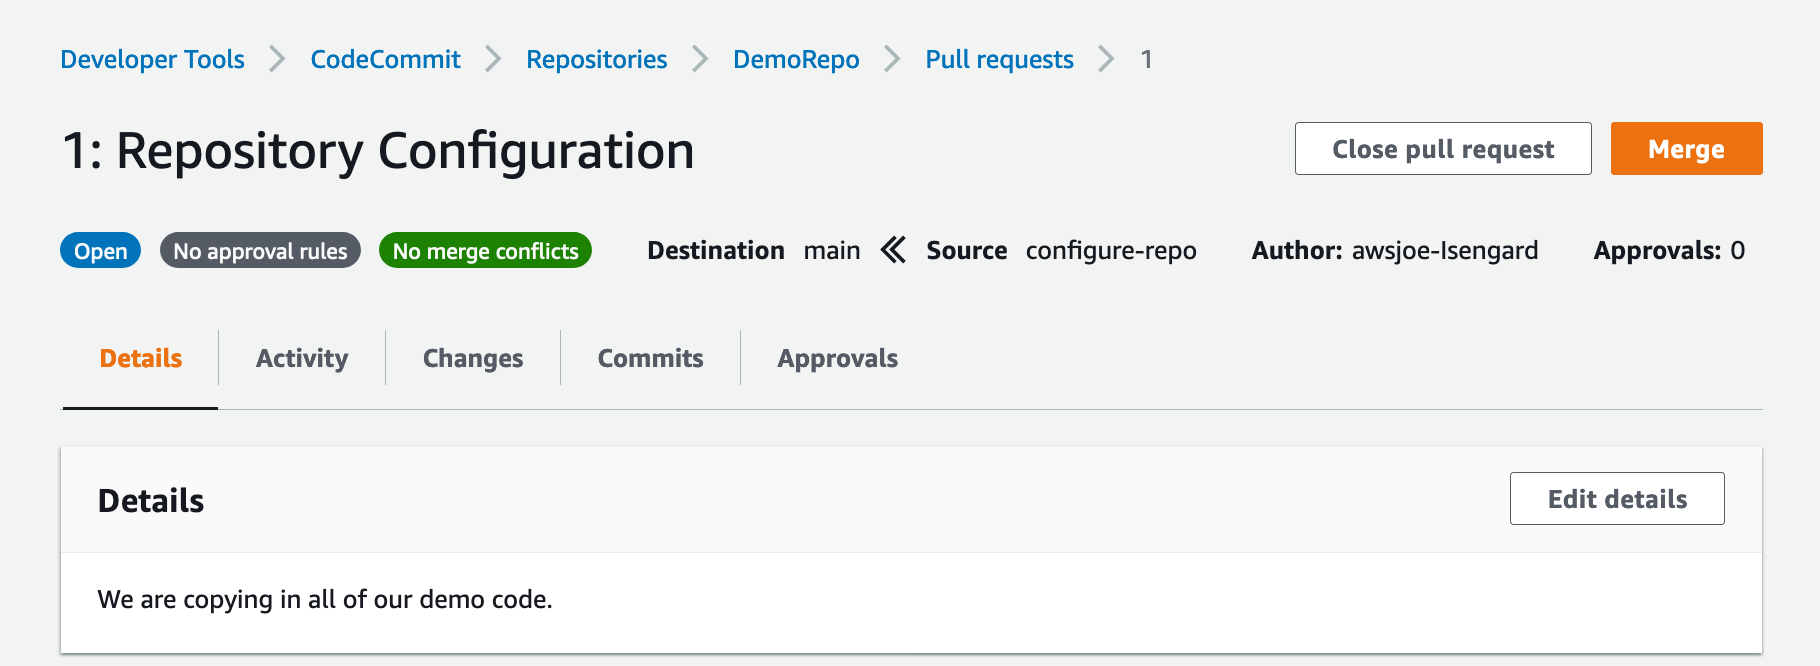 Shows merge for DemoRepo pull request